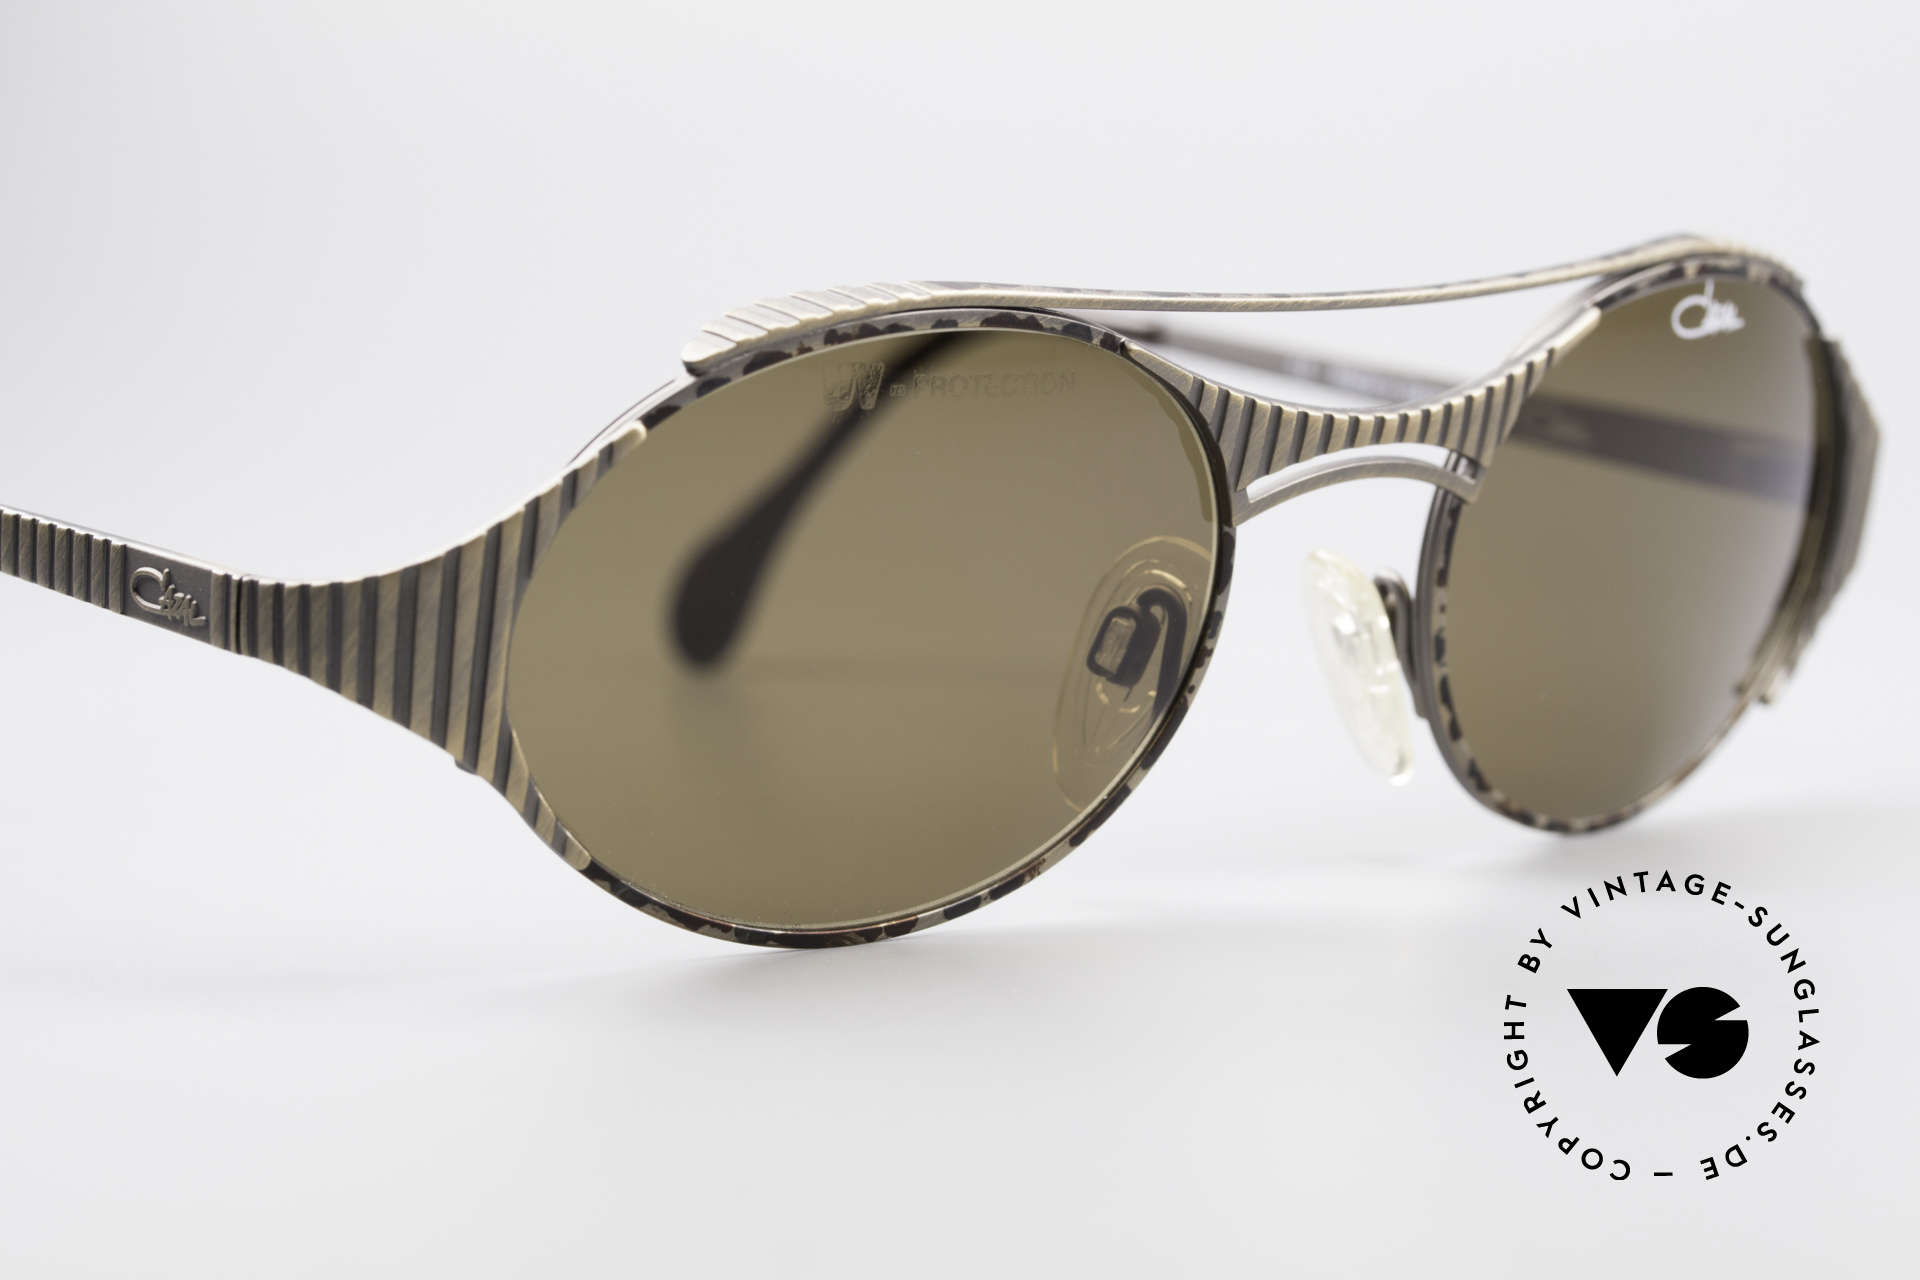 Cazal 978 Vintage Designer Sunglasses, with dark brown sun lenses (for 100% UV protection), Made for Men and Women